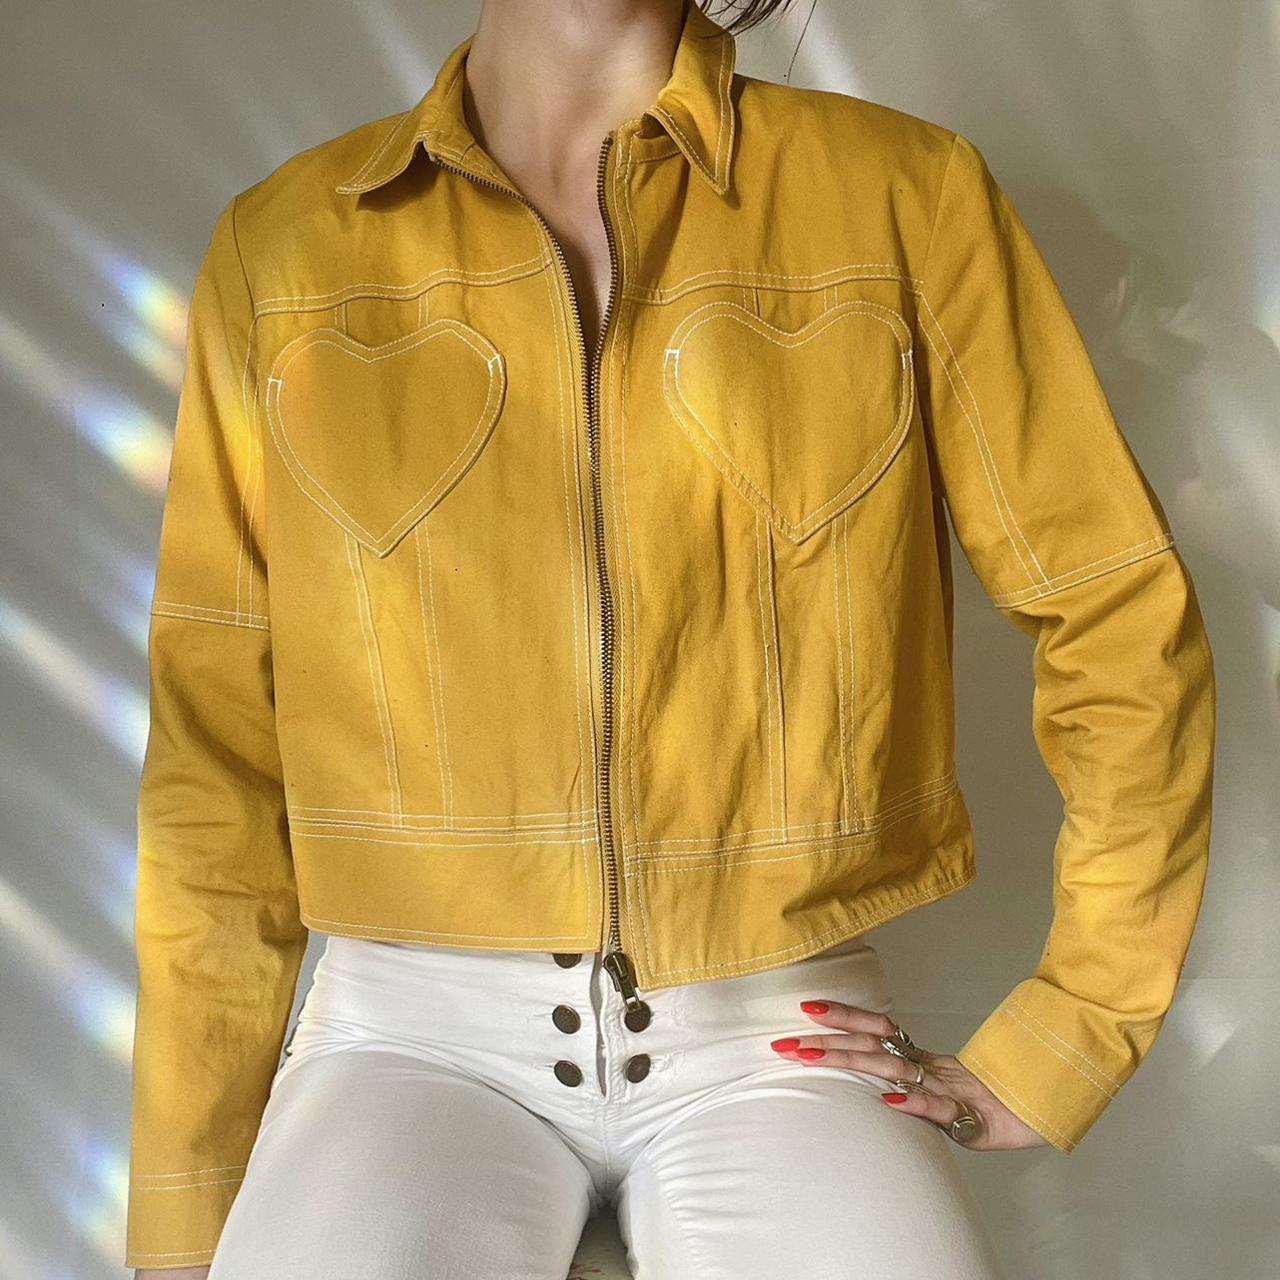 Product Image 1 - The most darling yellow zip